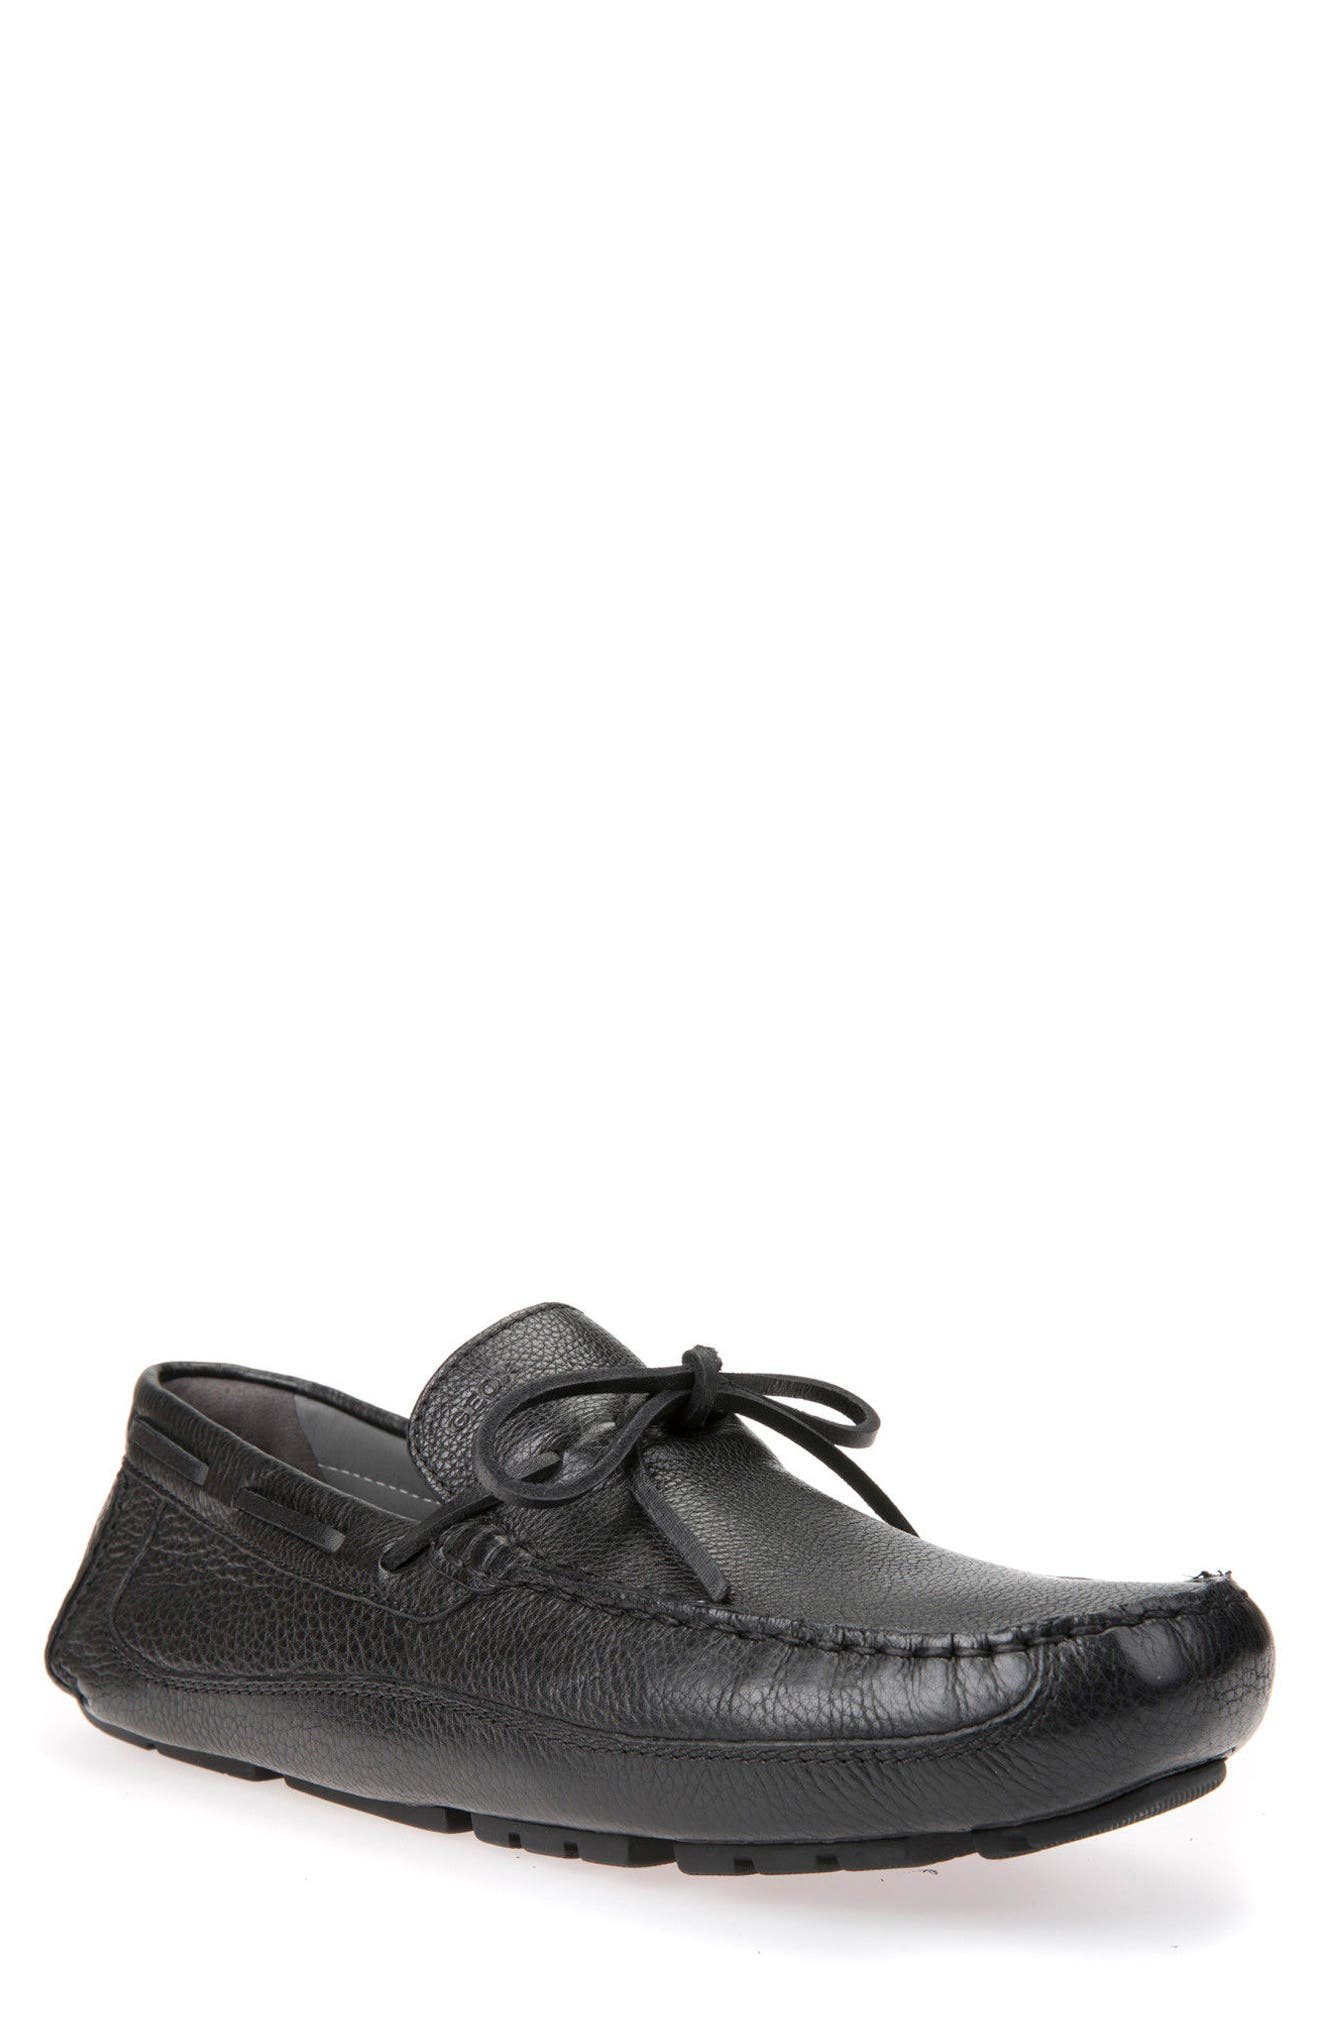 Melbourne 5 Driving Shoe,                         Main,                         color, Black Leather